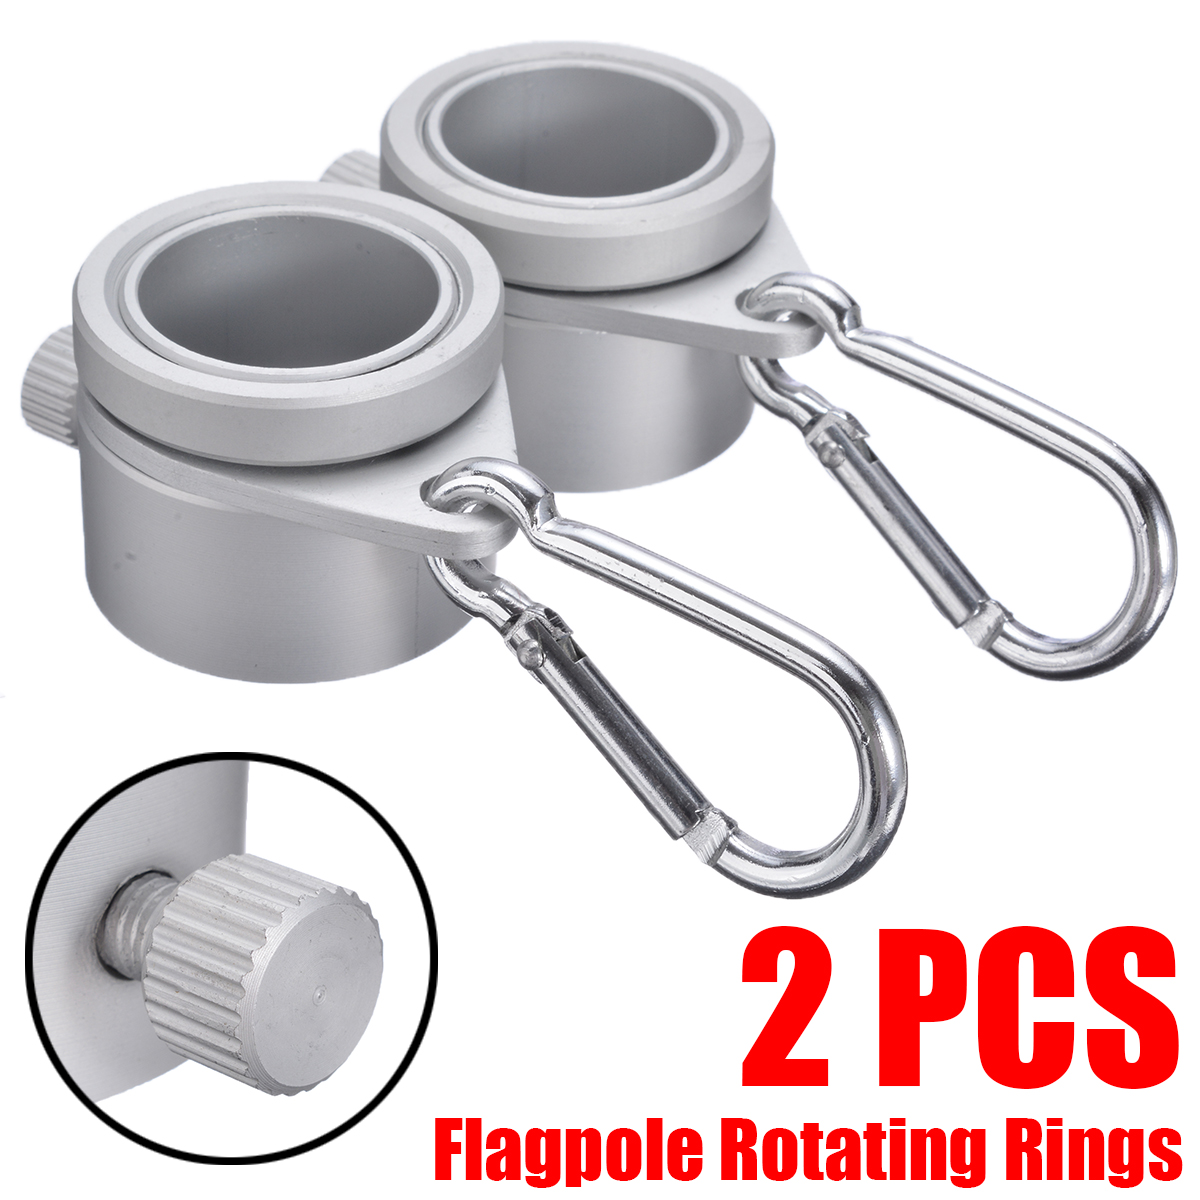 2pcs lot New Aluminium Alloy Flag Pole Flagpole Rotating Rings Clip Anti Wrap Grommet Mounting Rings Kit Silver